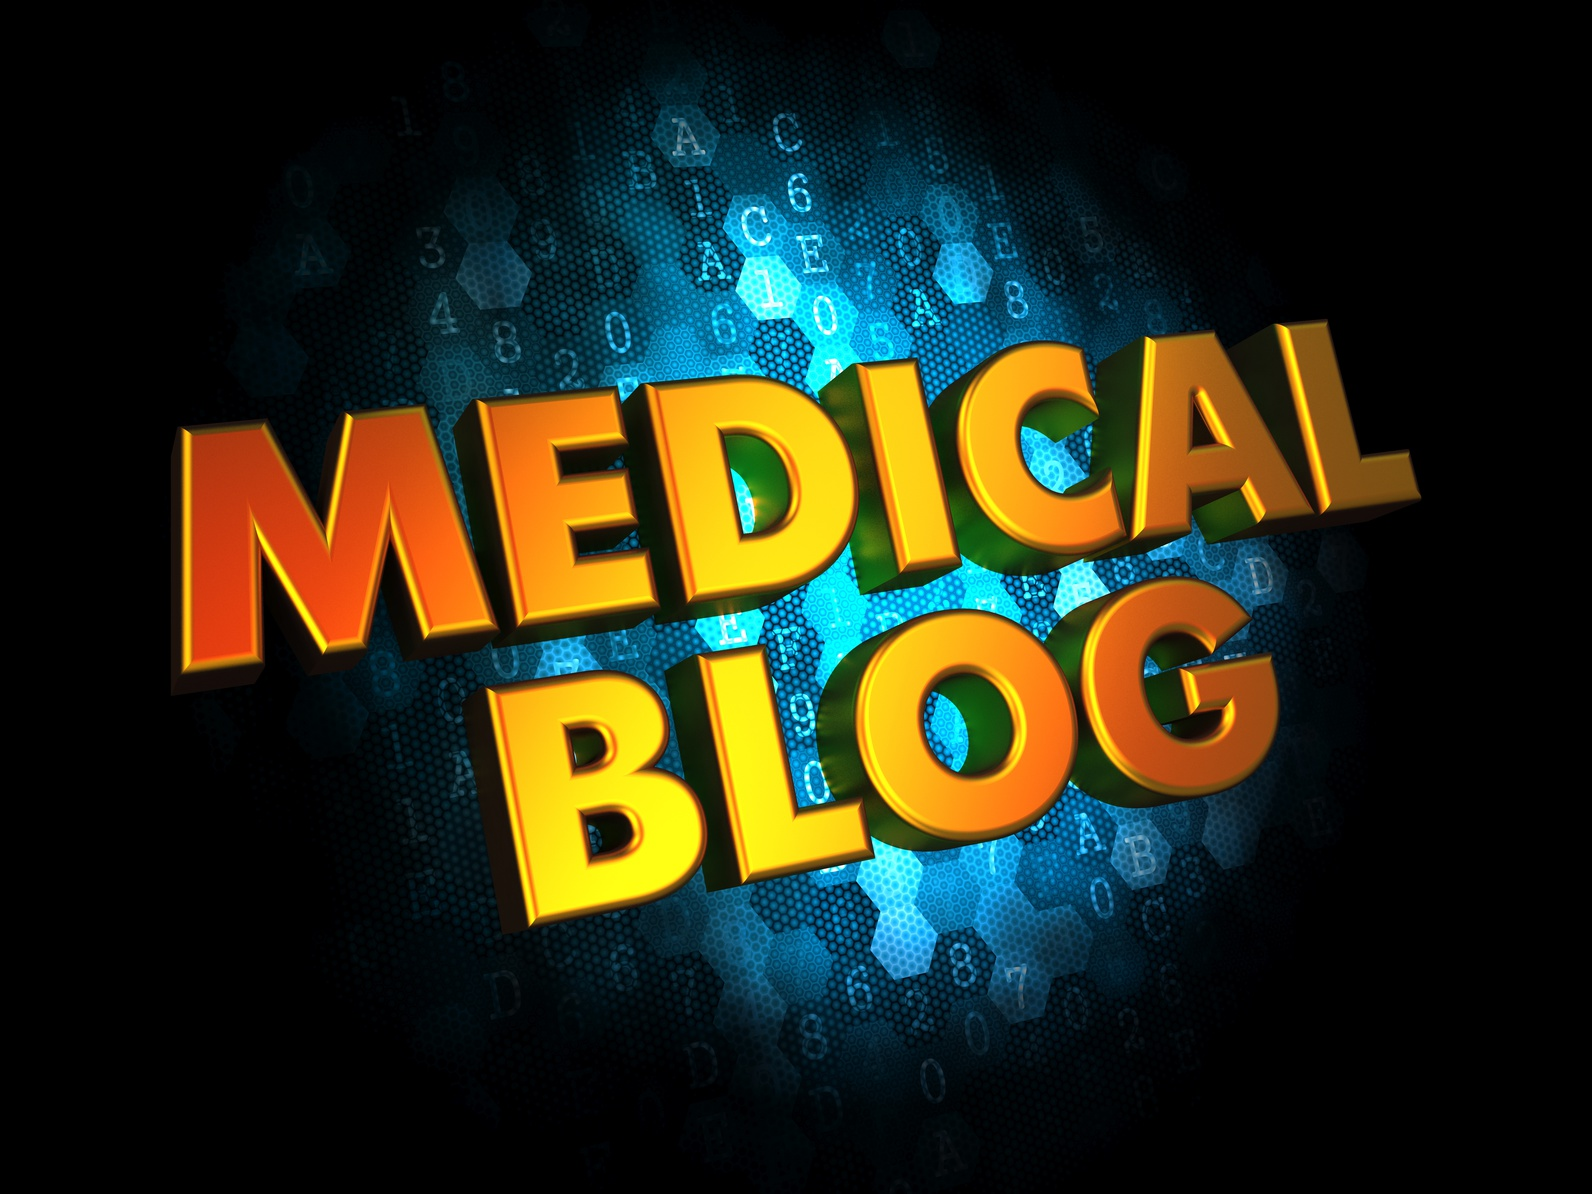 5 Dermatology Blogging Tips to Attract More Patients